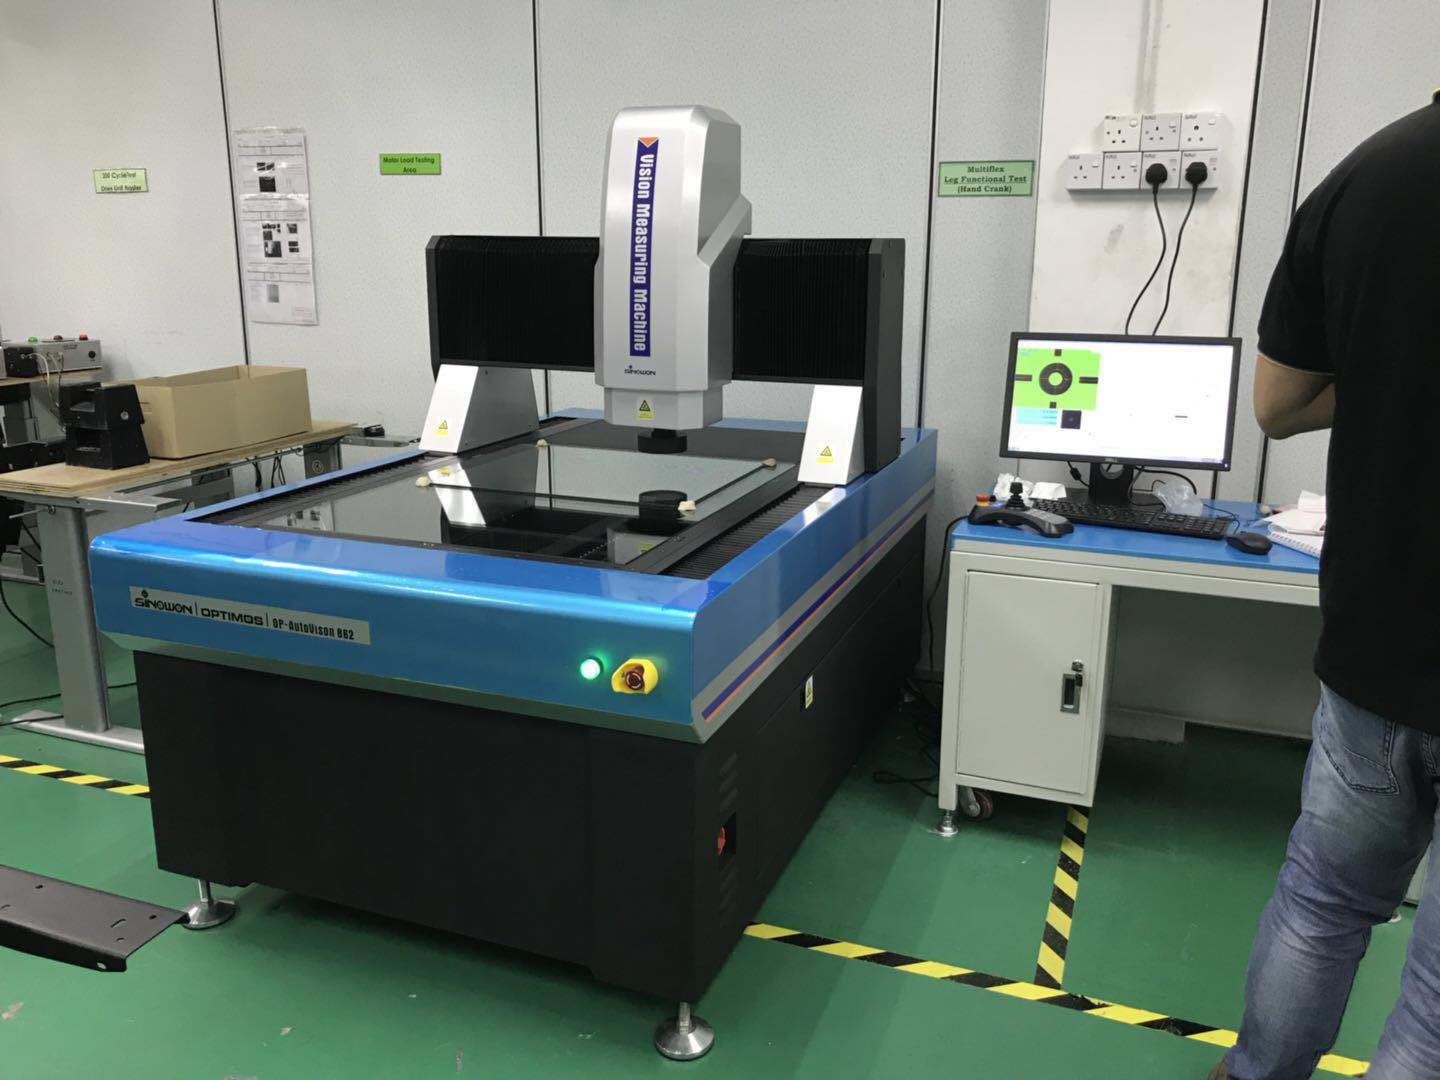 AutoVision862 Automatic Vision measuring Machine